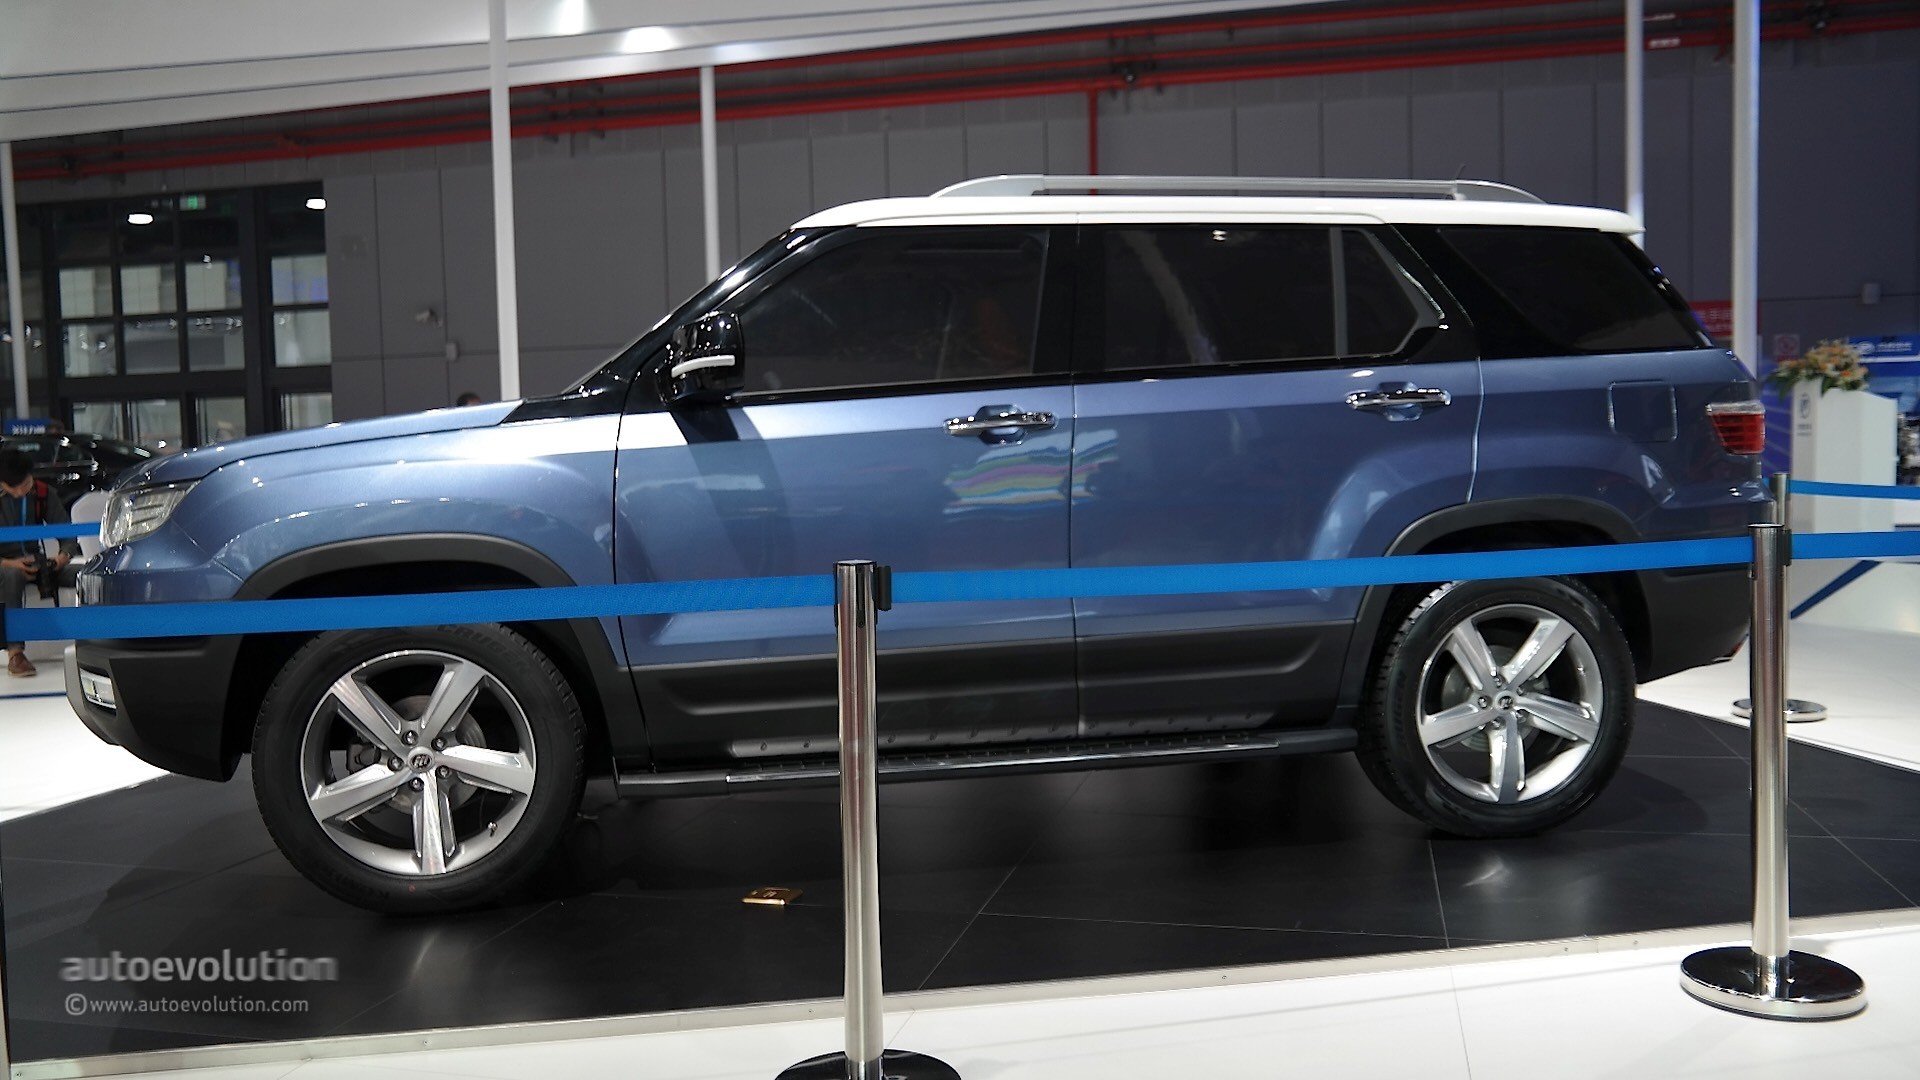 New Lexus Suv >> Lifan X70 SUV Concept Takes a Bow at Auto Shanghai 2015 - autoevolution